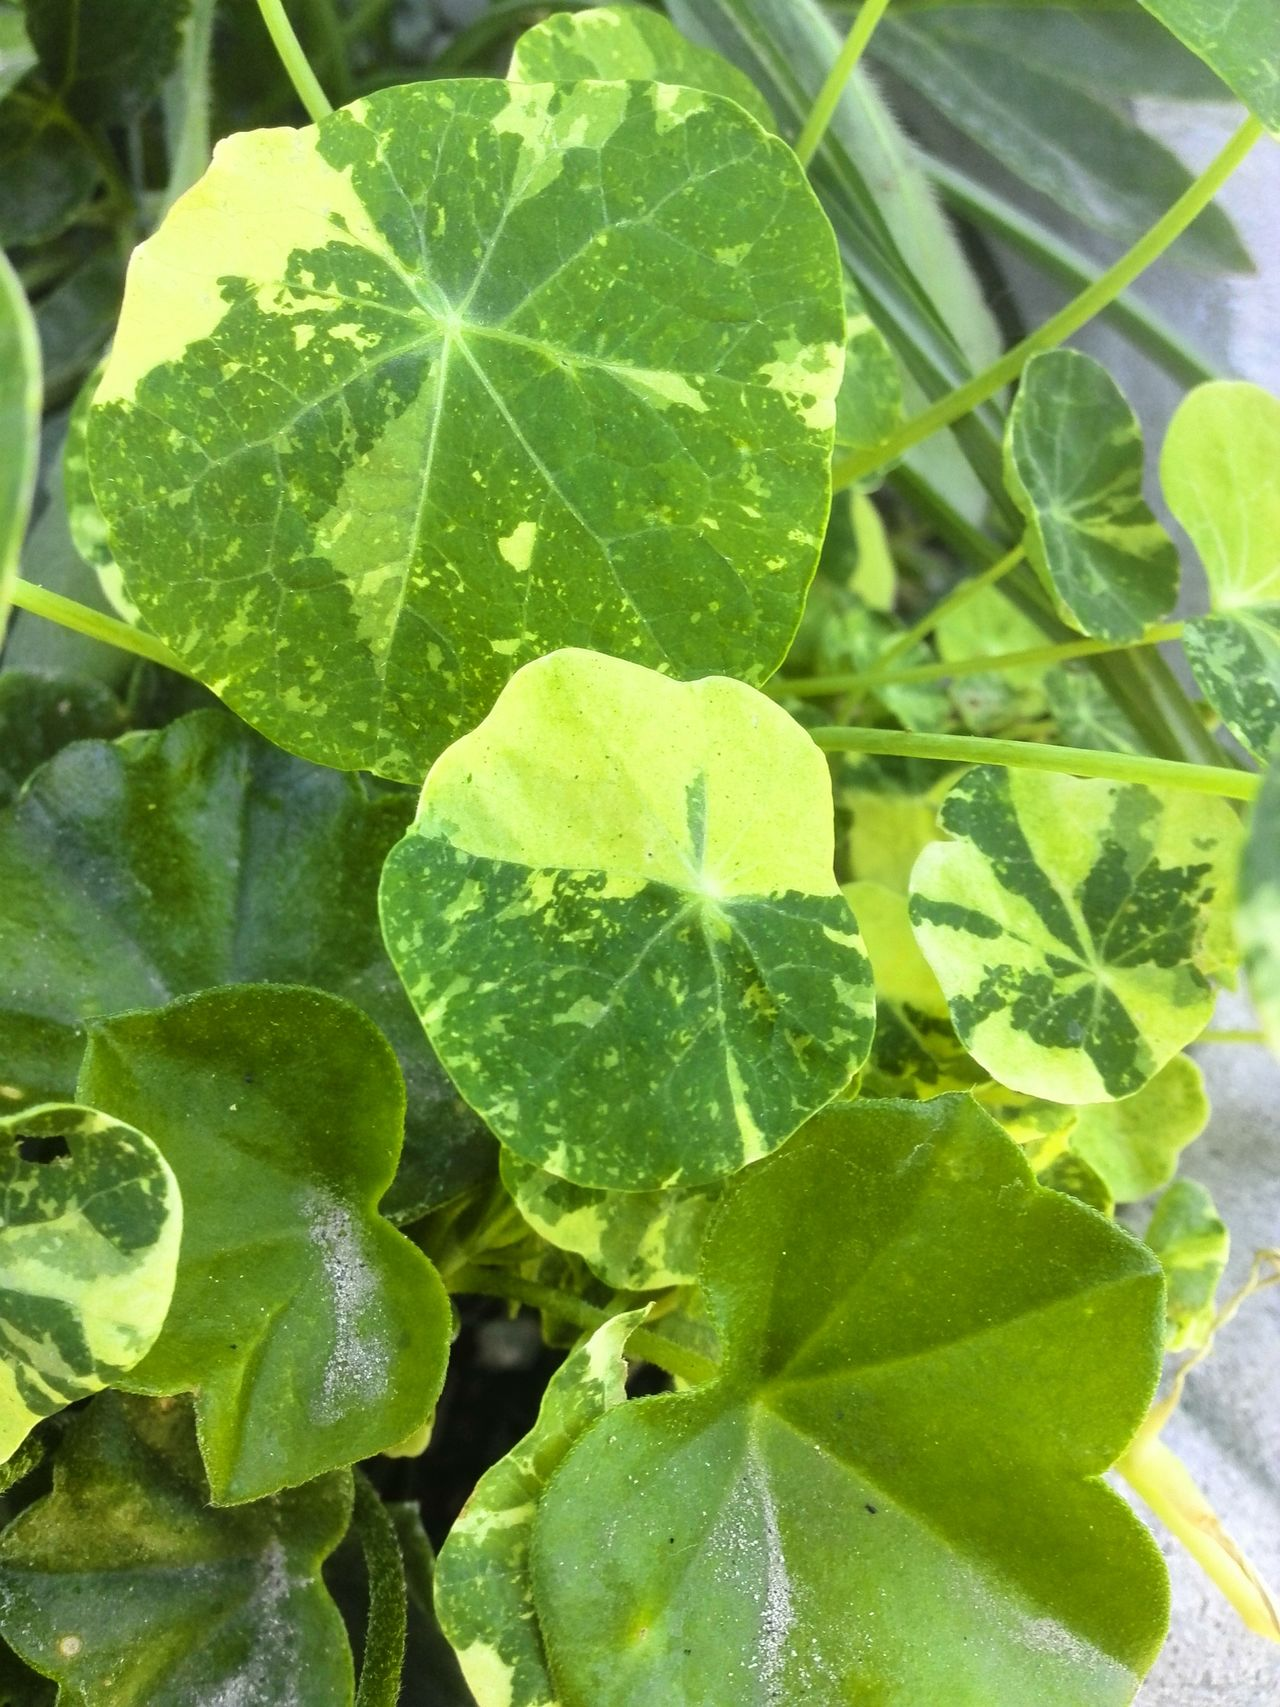 Botany Close Up Botany Attention To Detail Leaves Leaf Green Leaves Varigated Varigated Leaves Greenery Green Color Nasturtium Leaves Geranium Leaves Dustyleaf Container Gardening